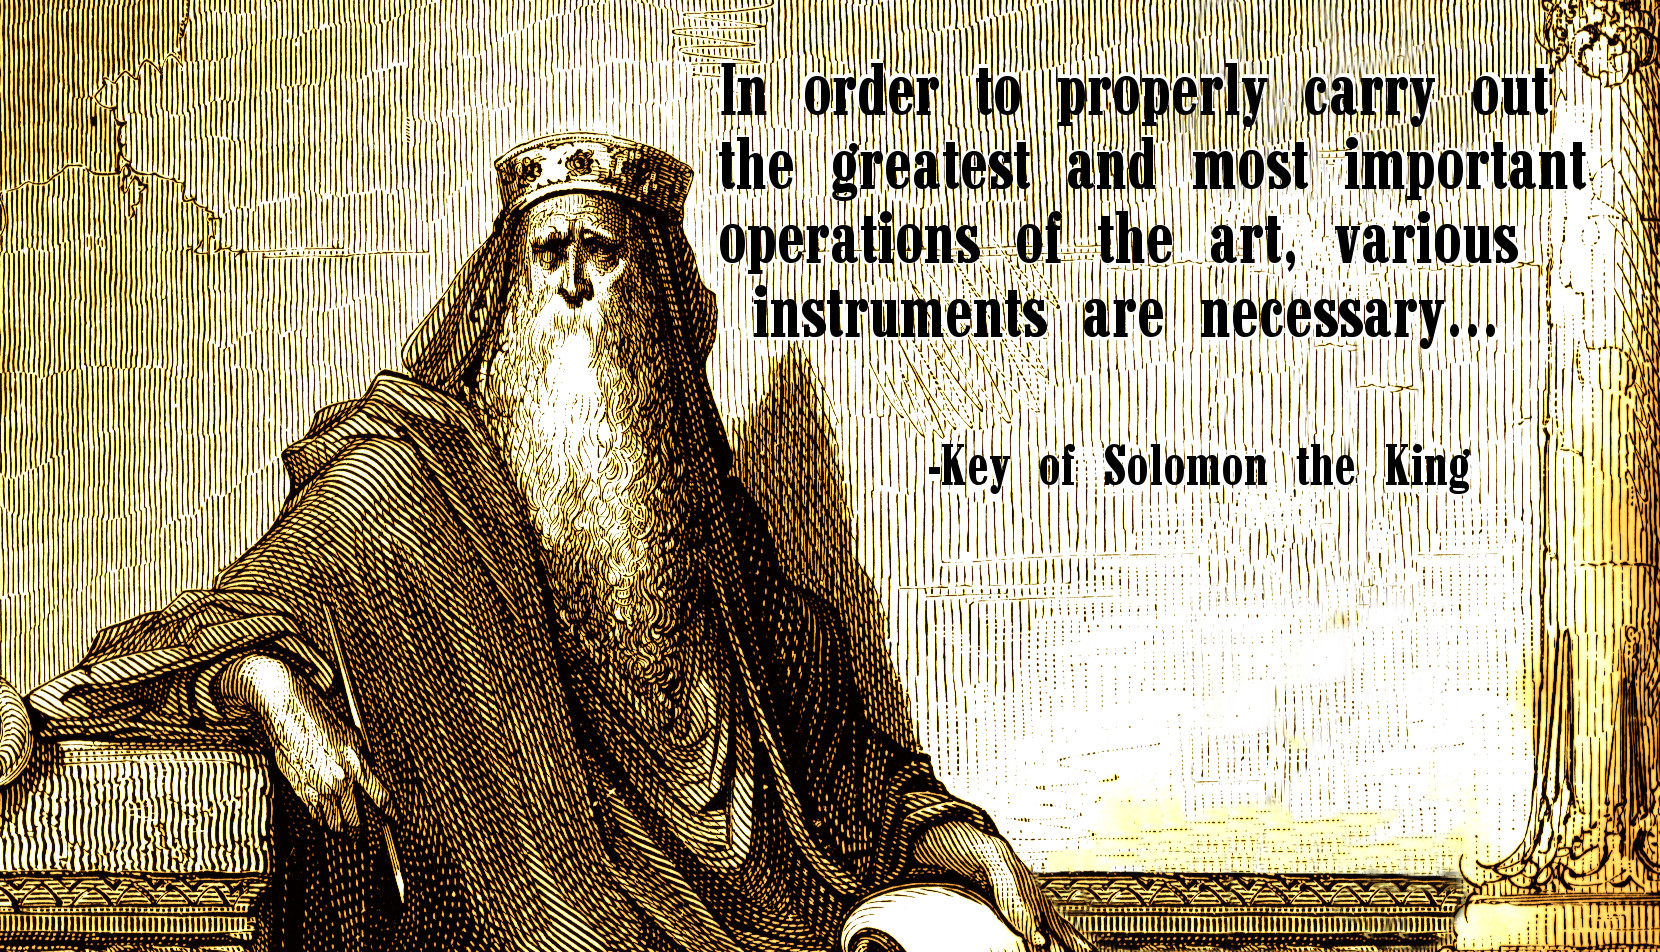 In order to properly carry out the greatest and most important operations of the art, various instruments are necessary... -Key of Solomon the King